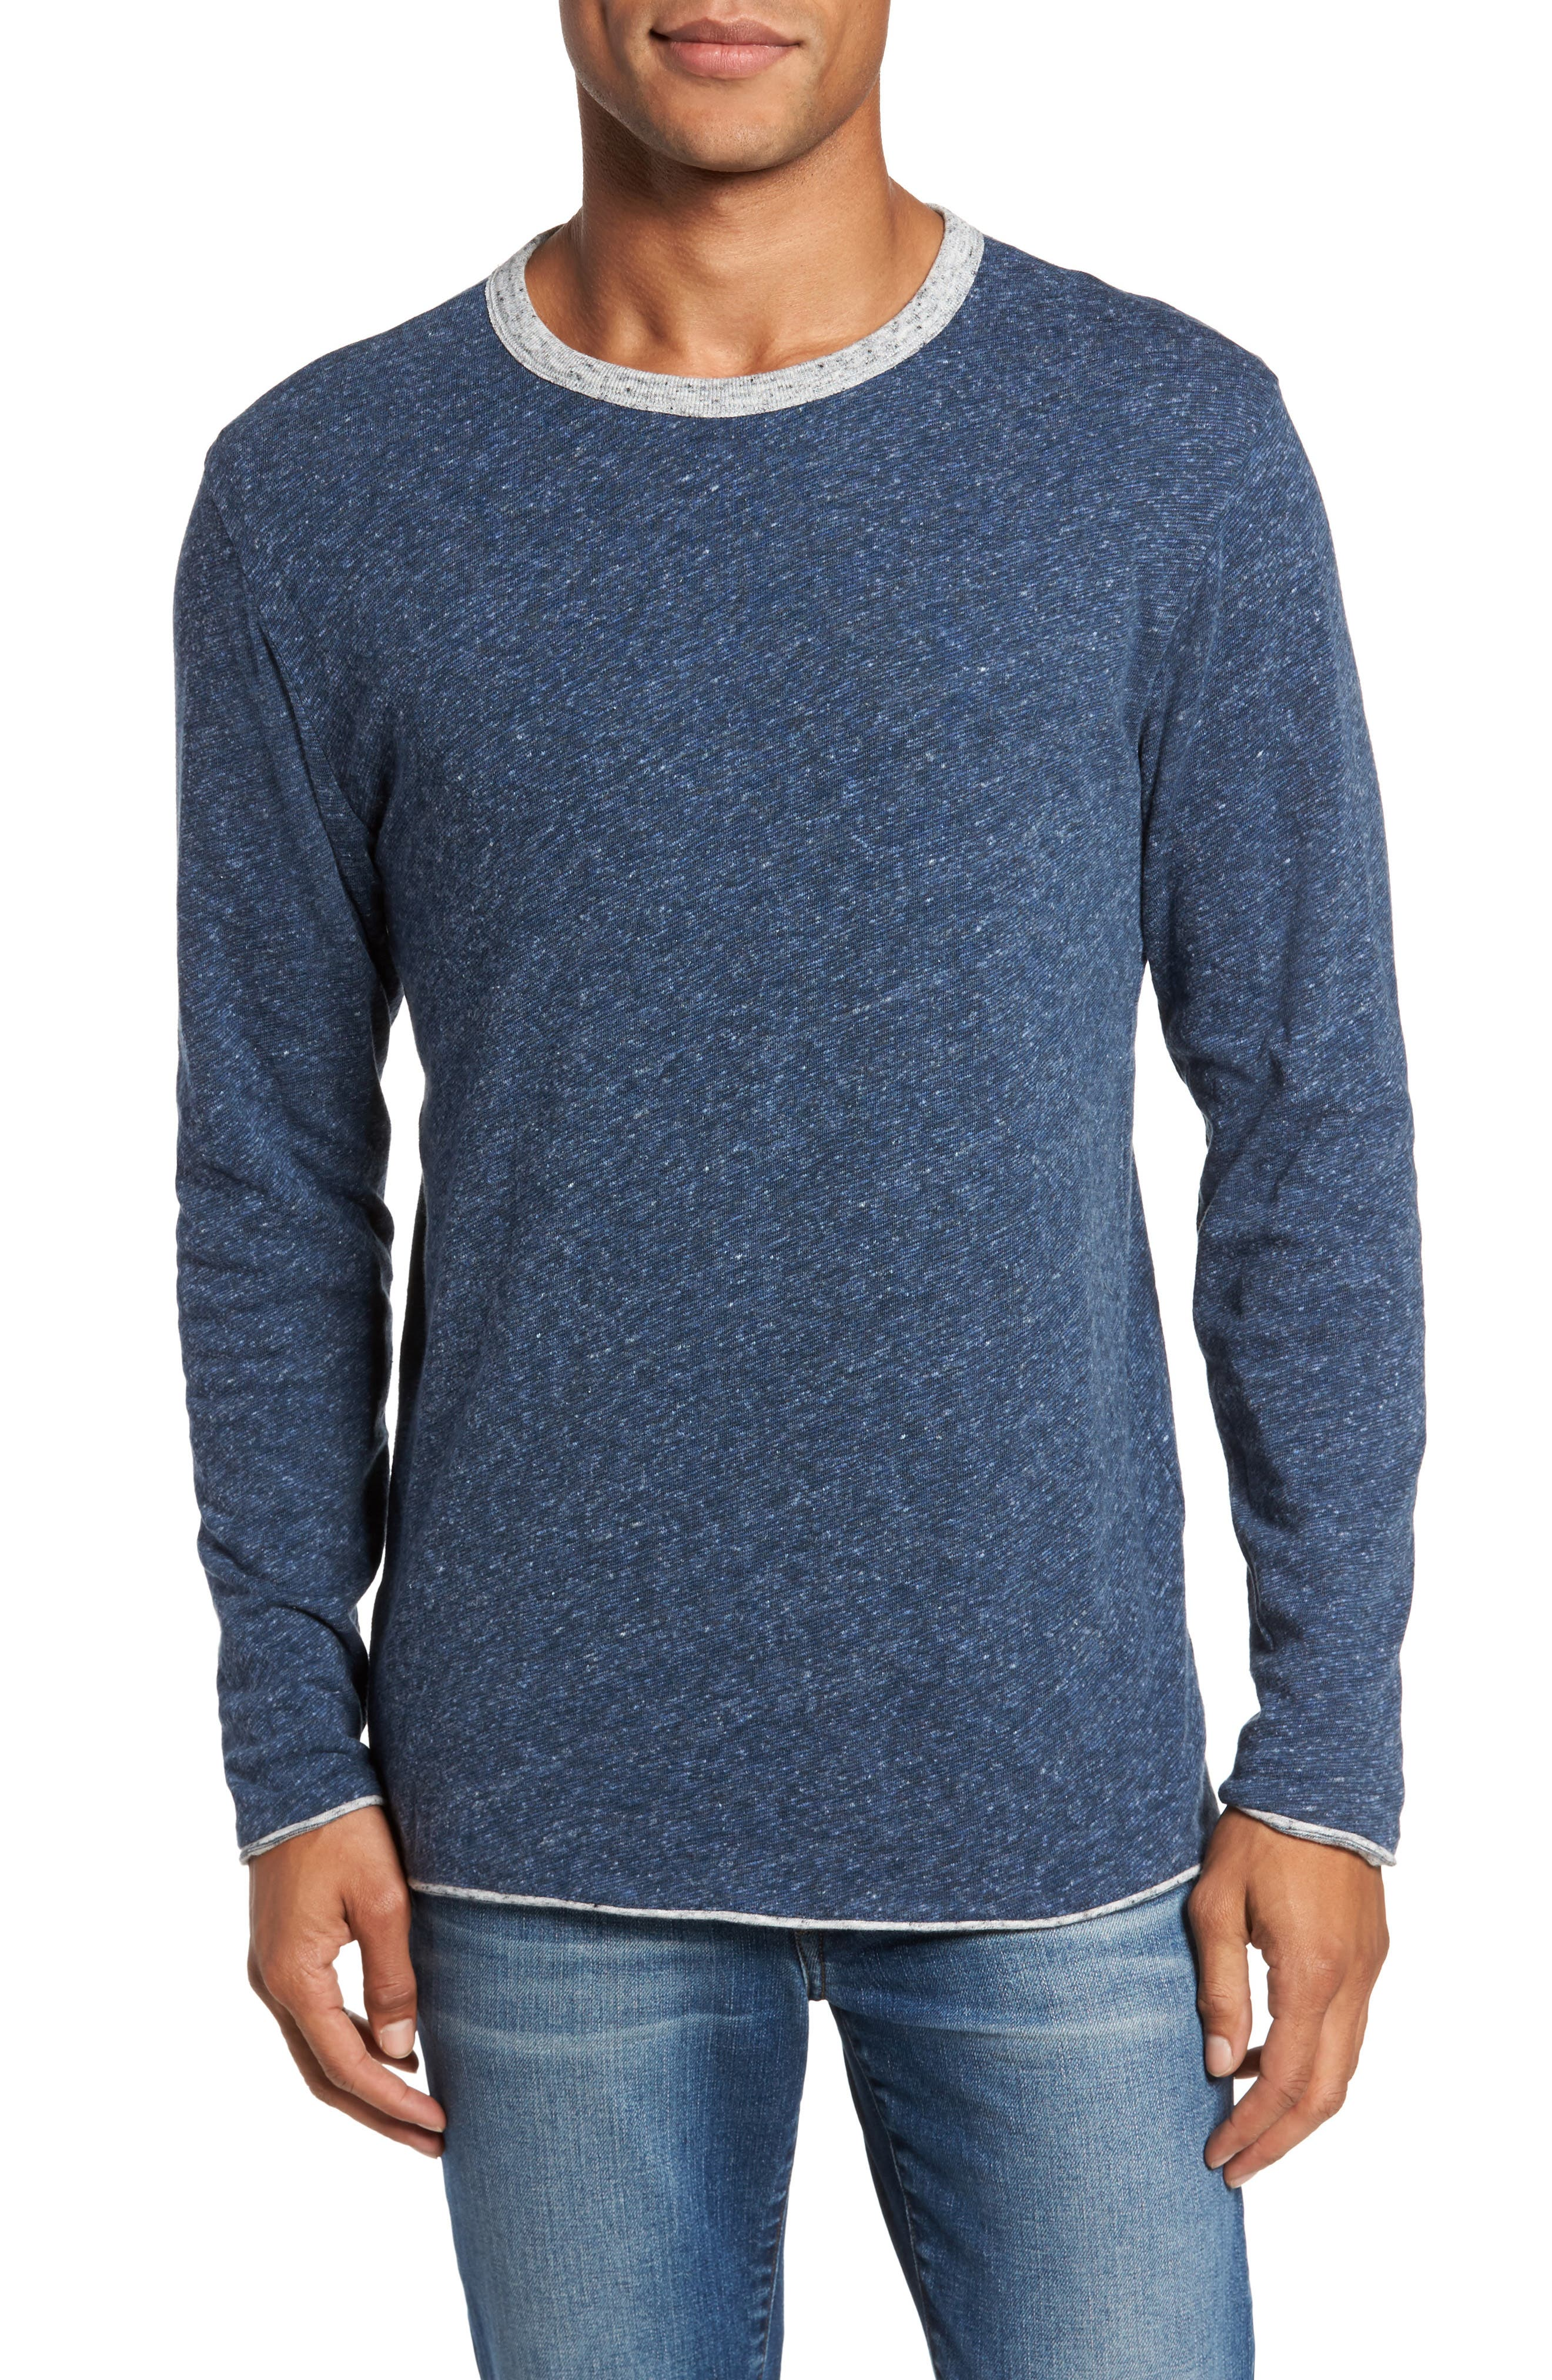 Heathered Reversible Long Sleeve Crewneck T-Shirt,                             Alternate thumbnail 4, color,                             032